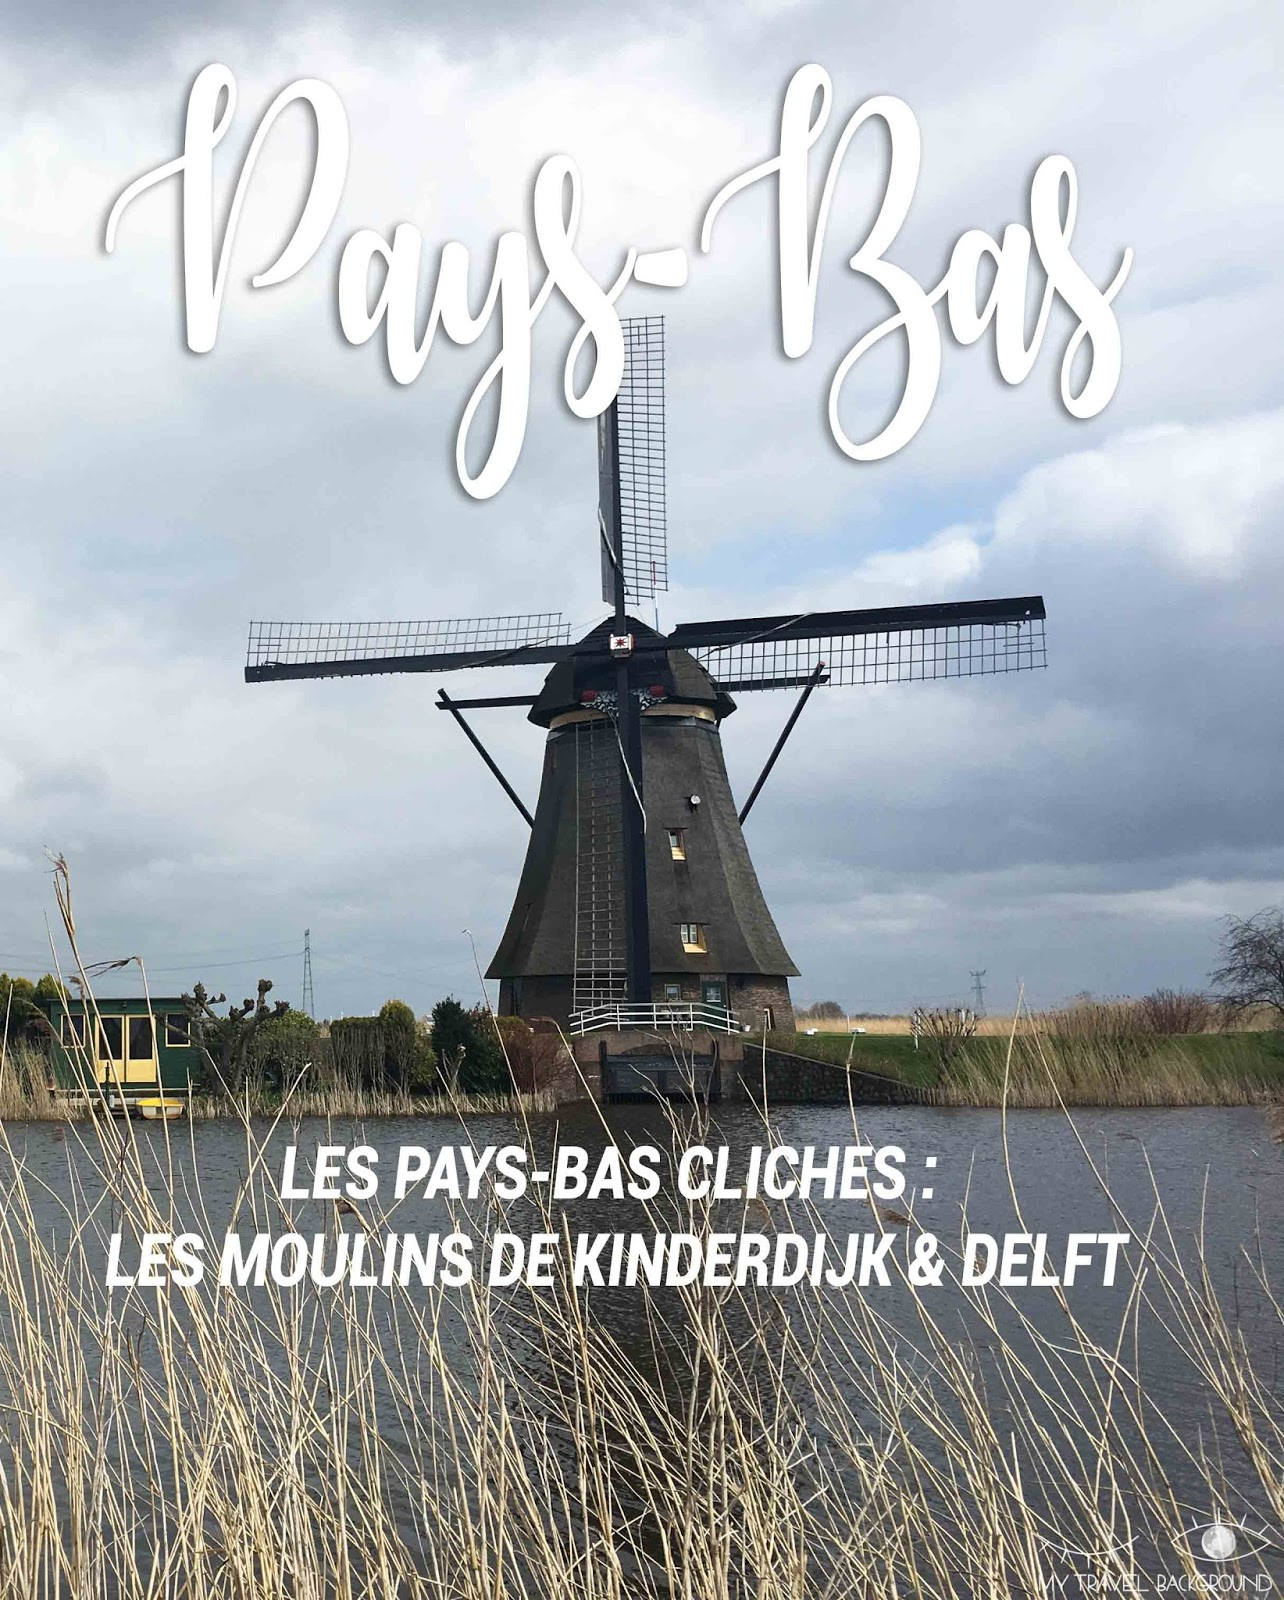 My Travel Background : les Pays-Bas clichés : les moulins de Kinderdijk & Delft